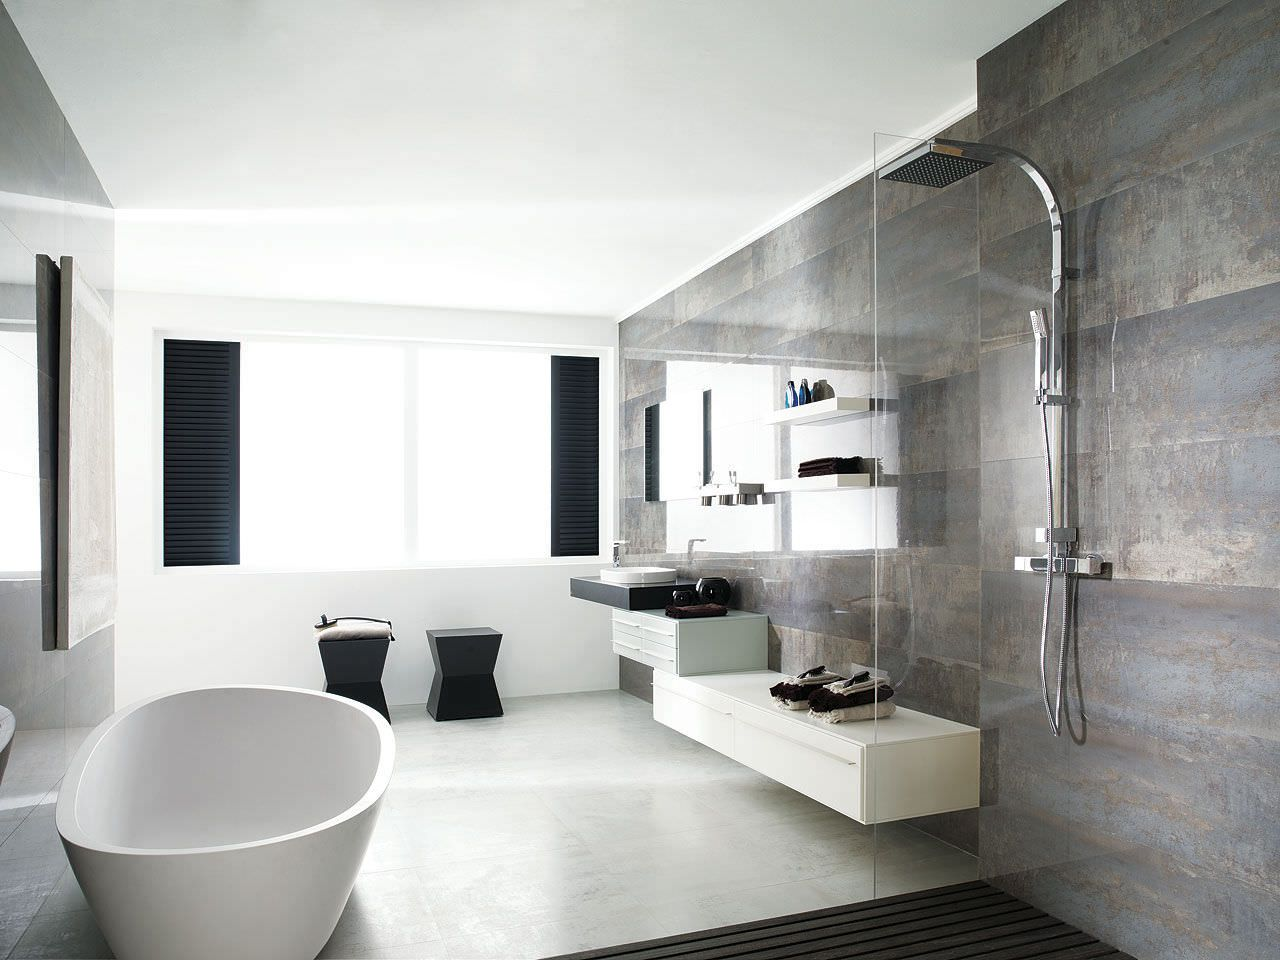 metallic tiles bathroom - google search | metallic tiled looks